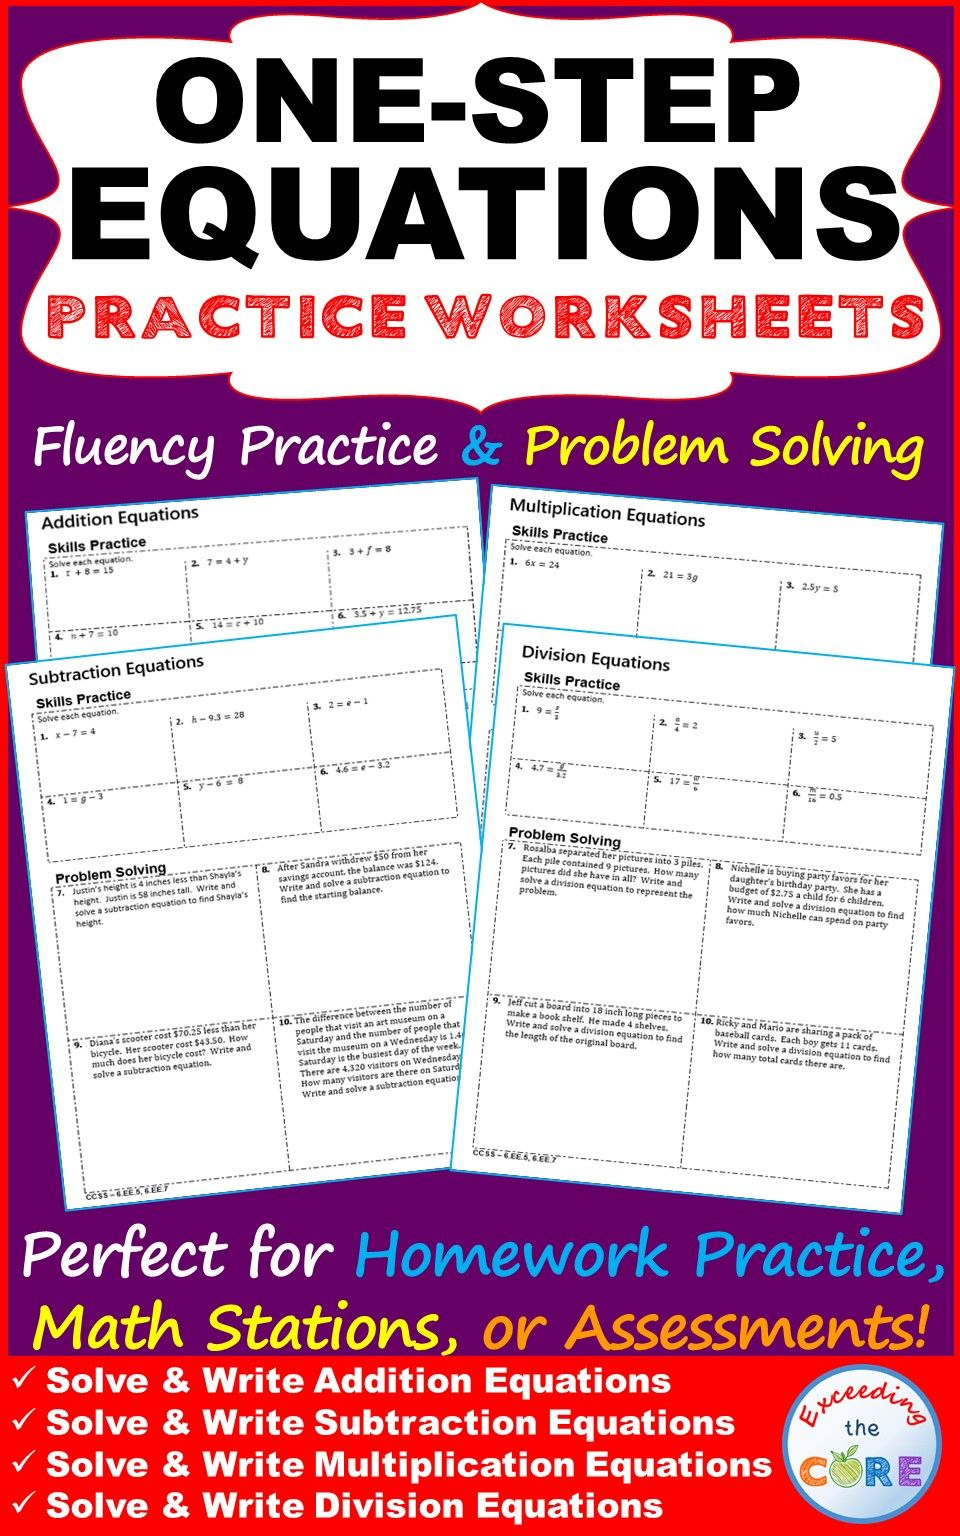 Includes Four One Step Equations Practice Worksheets 40 Questions Each Worksheet Includes A Skills One Step Equations Word Problems Math Practice Worksheets Addition and subtraction equations word